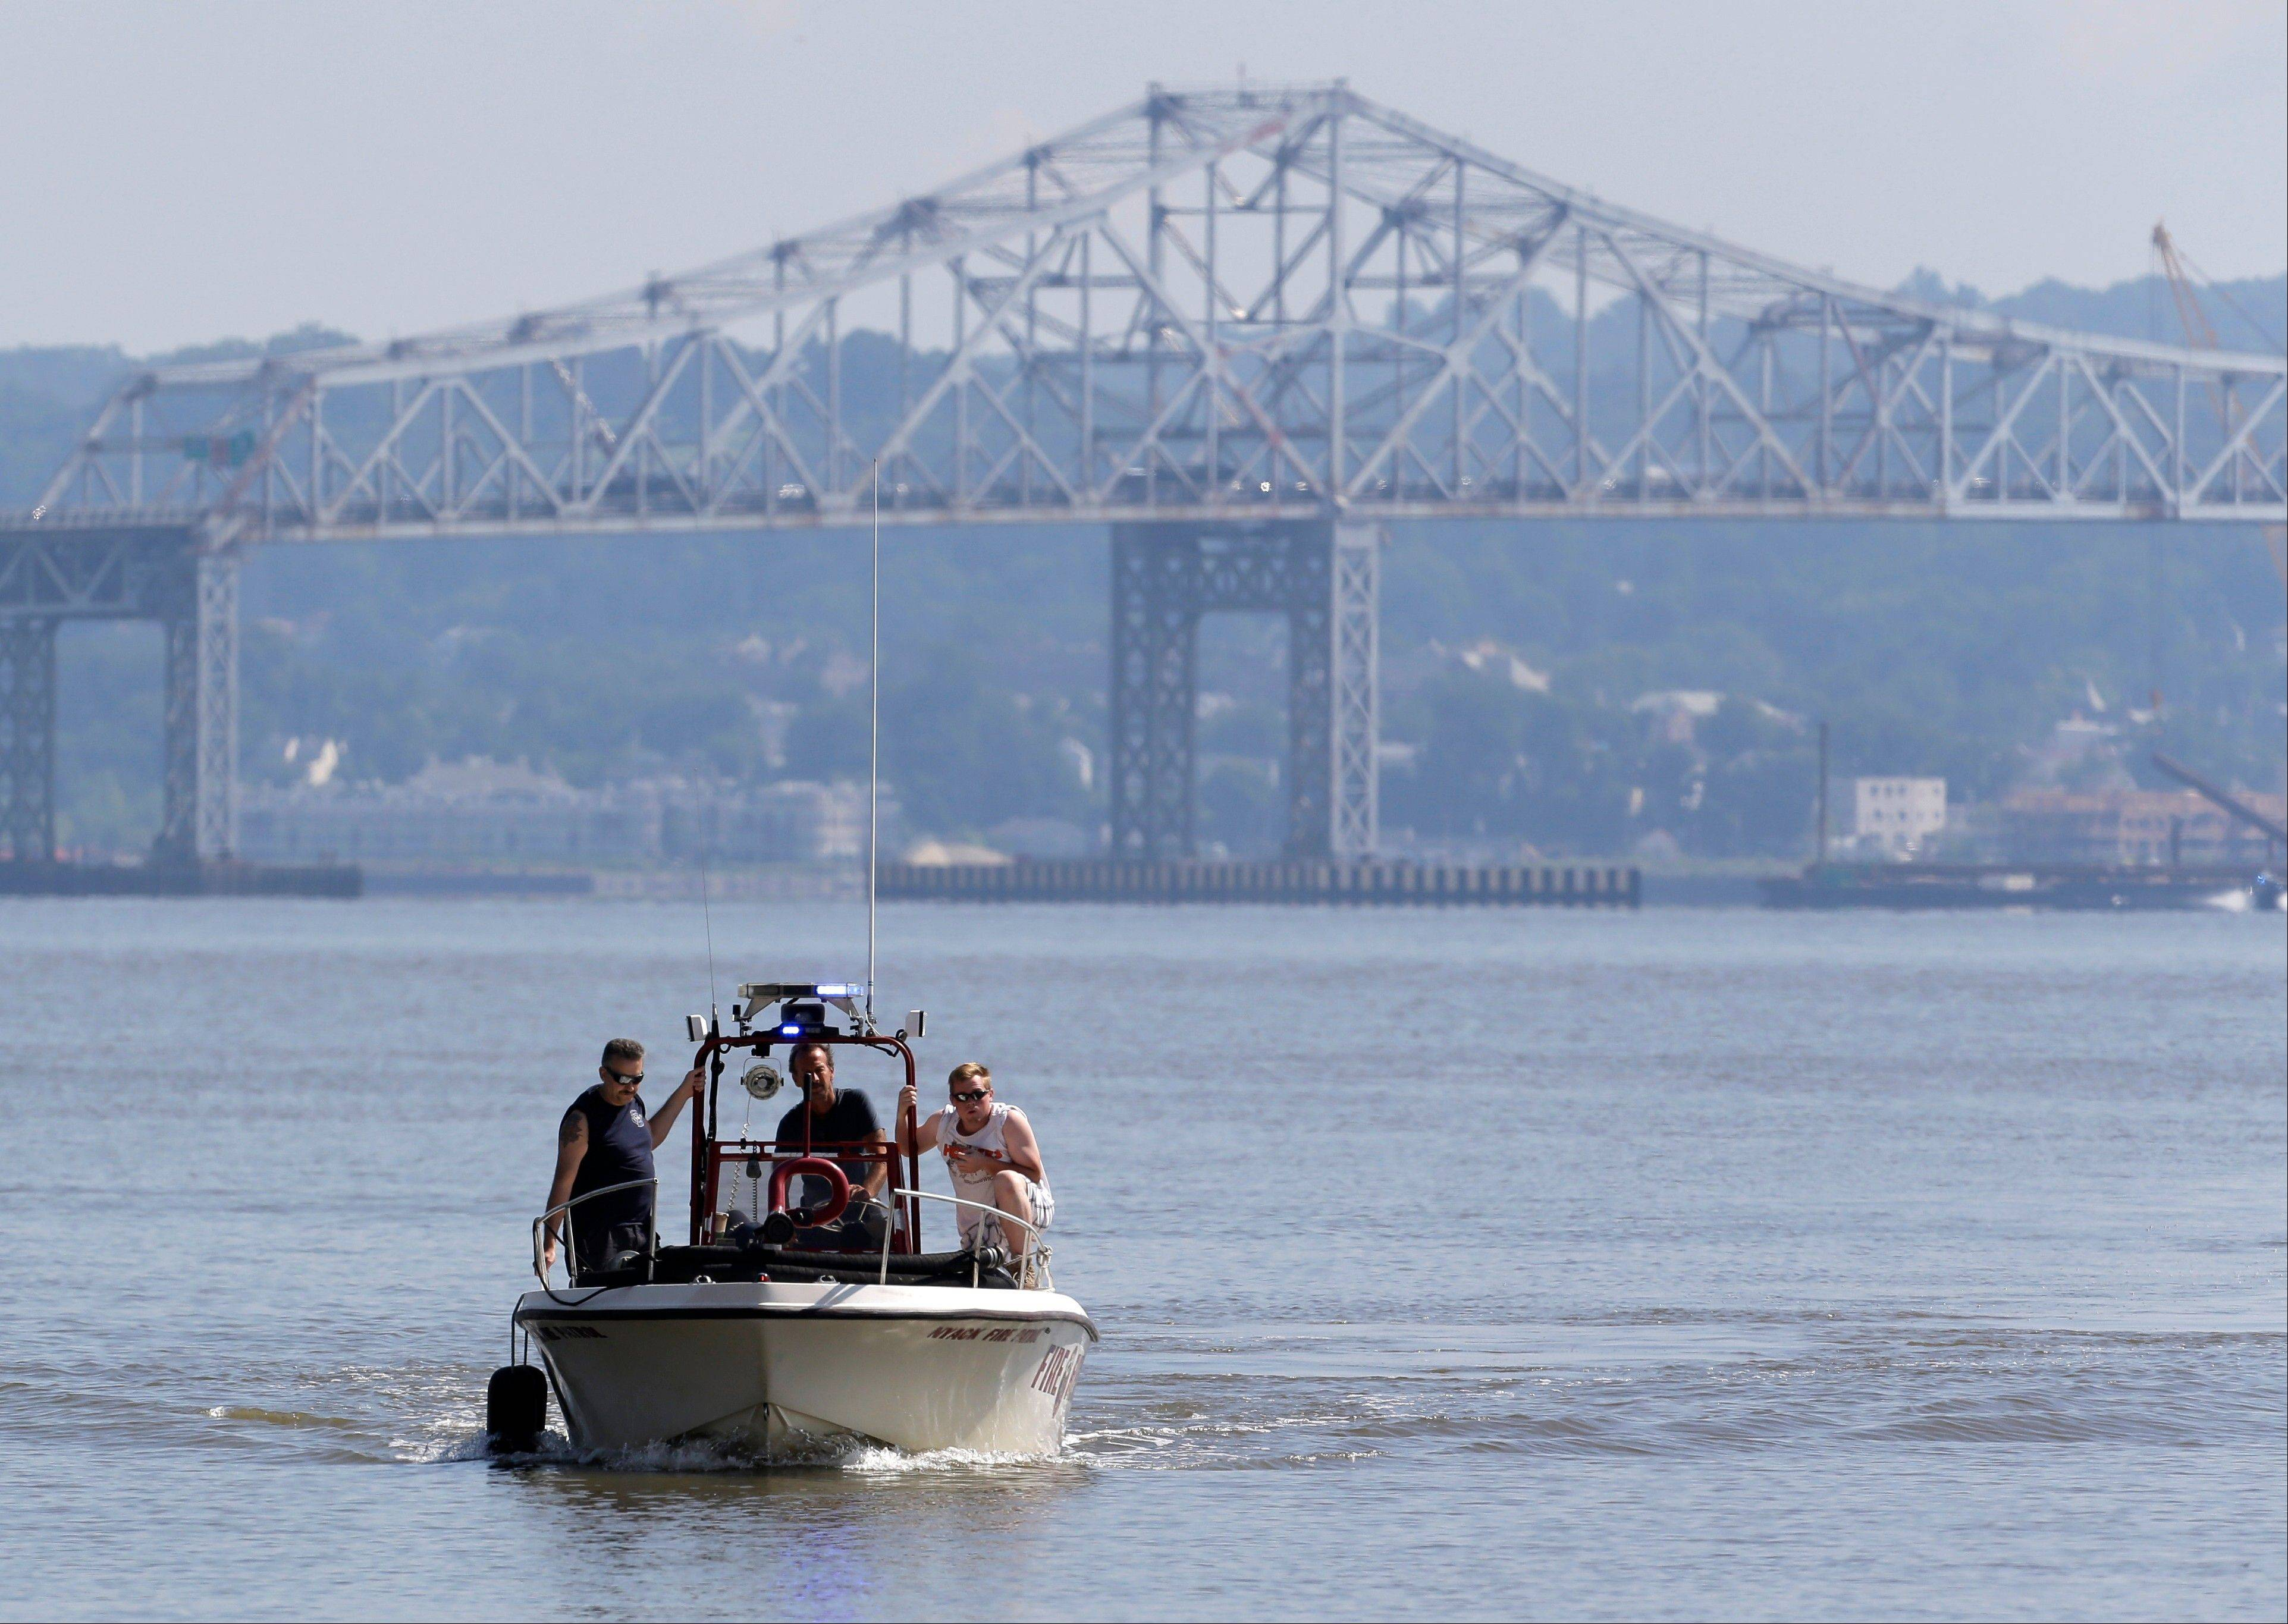 Rescue workers on a boat search the Hudson River south of the Tappan Zee Bridge for two people who are believed to have fallen into the water during a boat crash in Piermont, N.Y. on Saturday, July 27. Two people are missing and four others are injured after their boat struck a barge under the bridge, according to the Coast Guard.